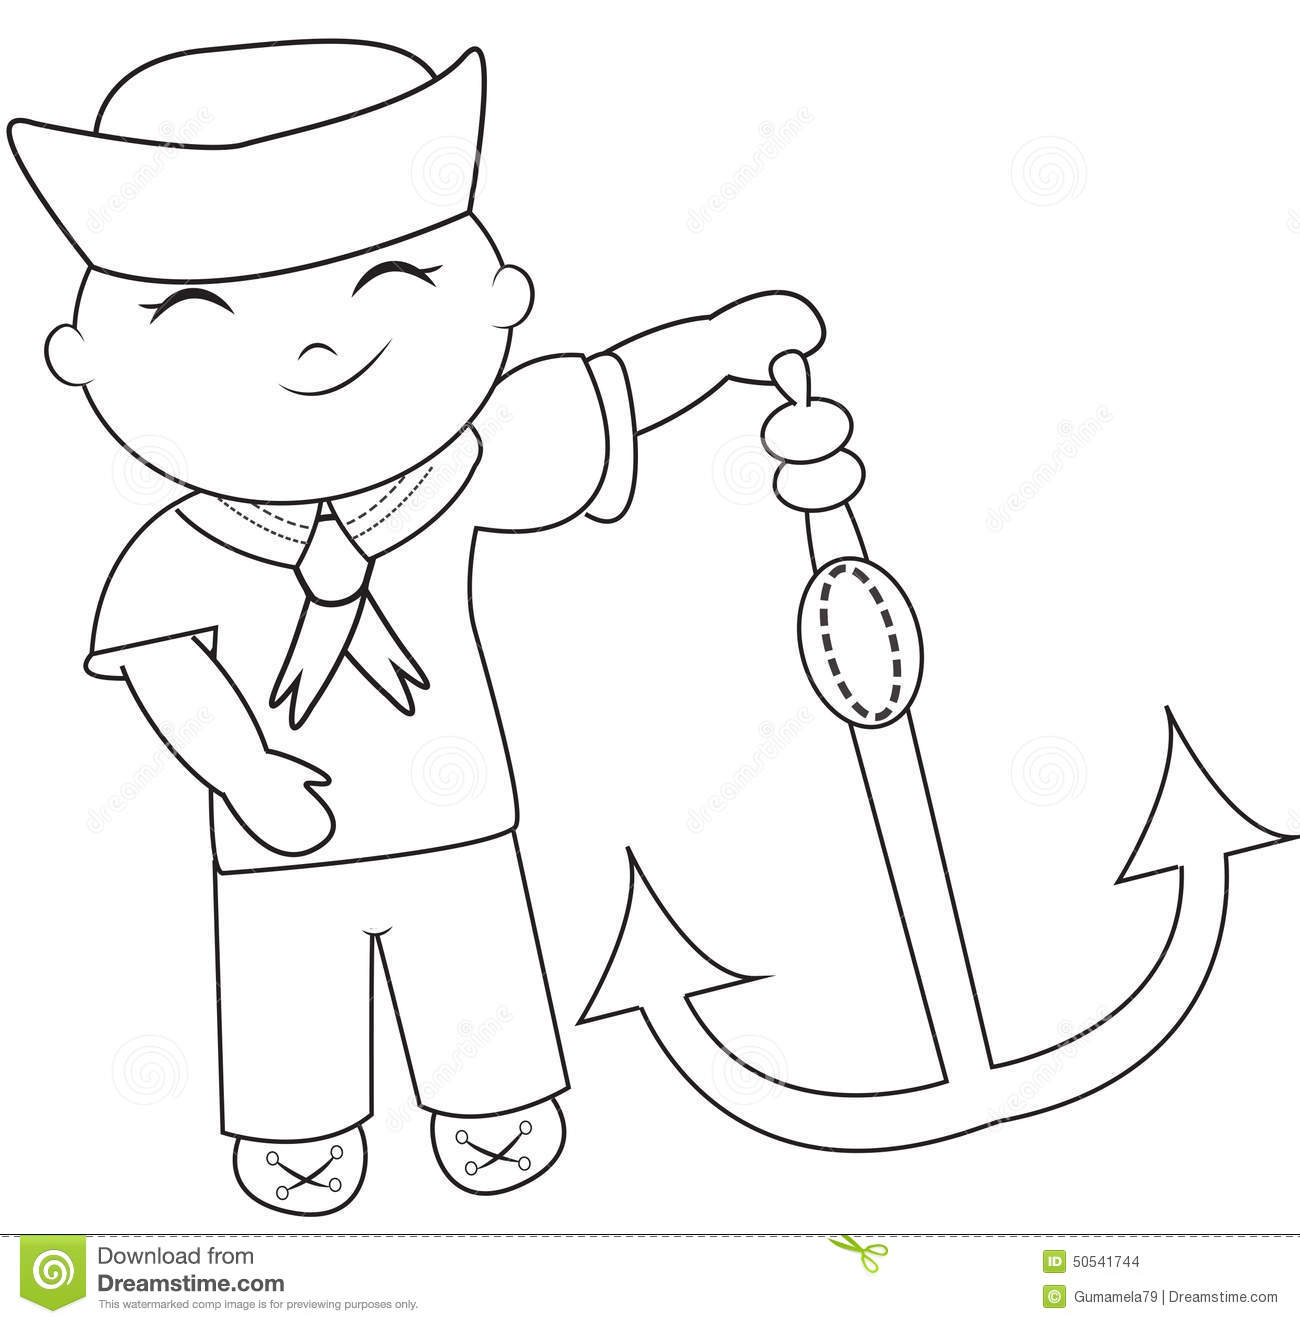 Sailor coloring page stock illustration. Illustration of exterior ...